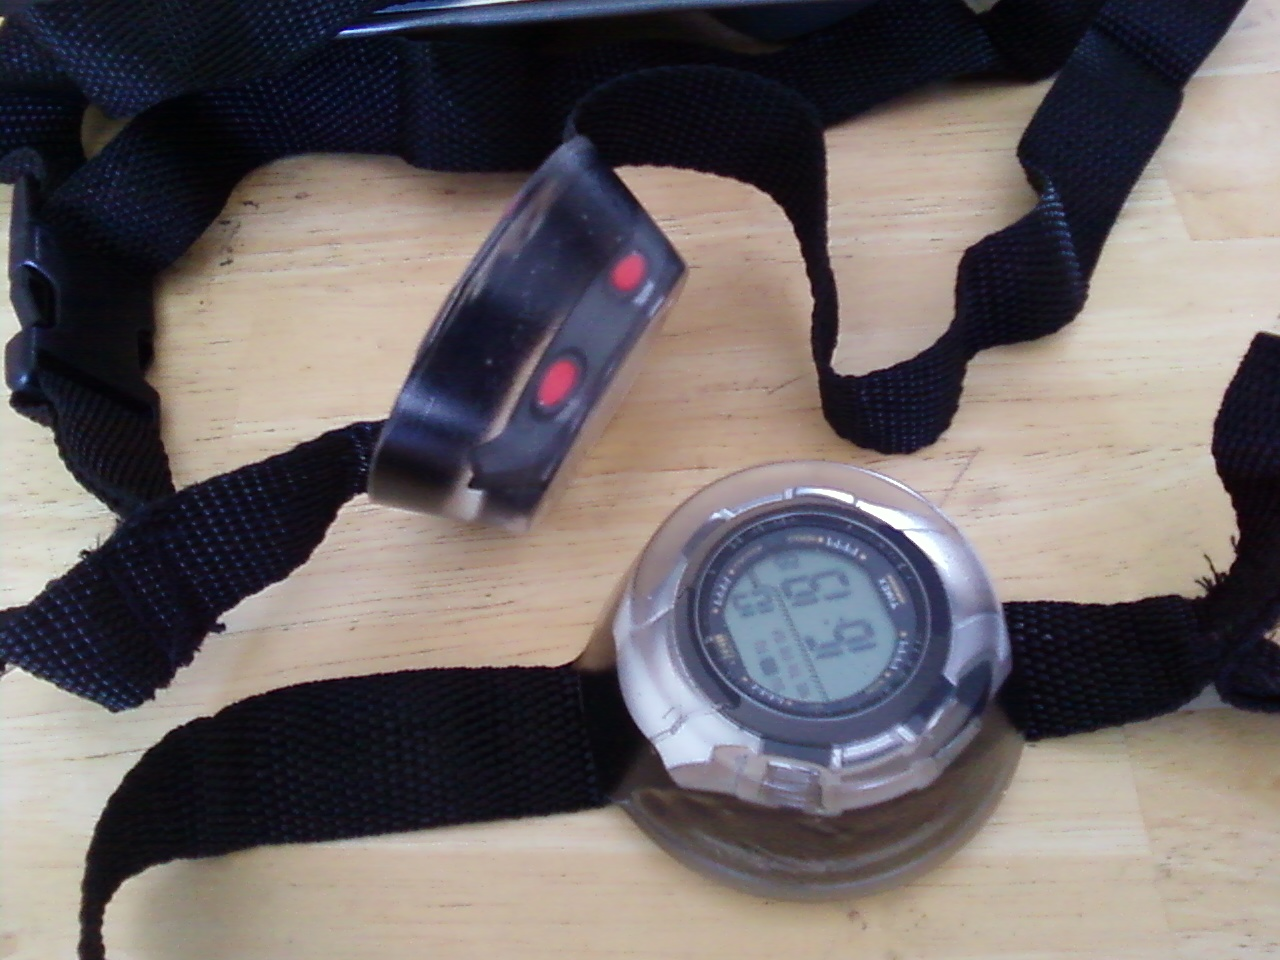 Convert a water-resistant sport watch into a dive watch